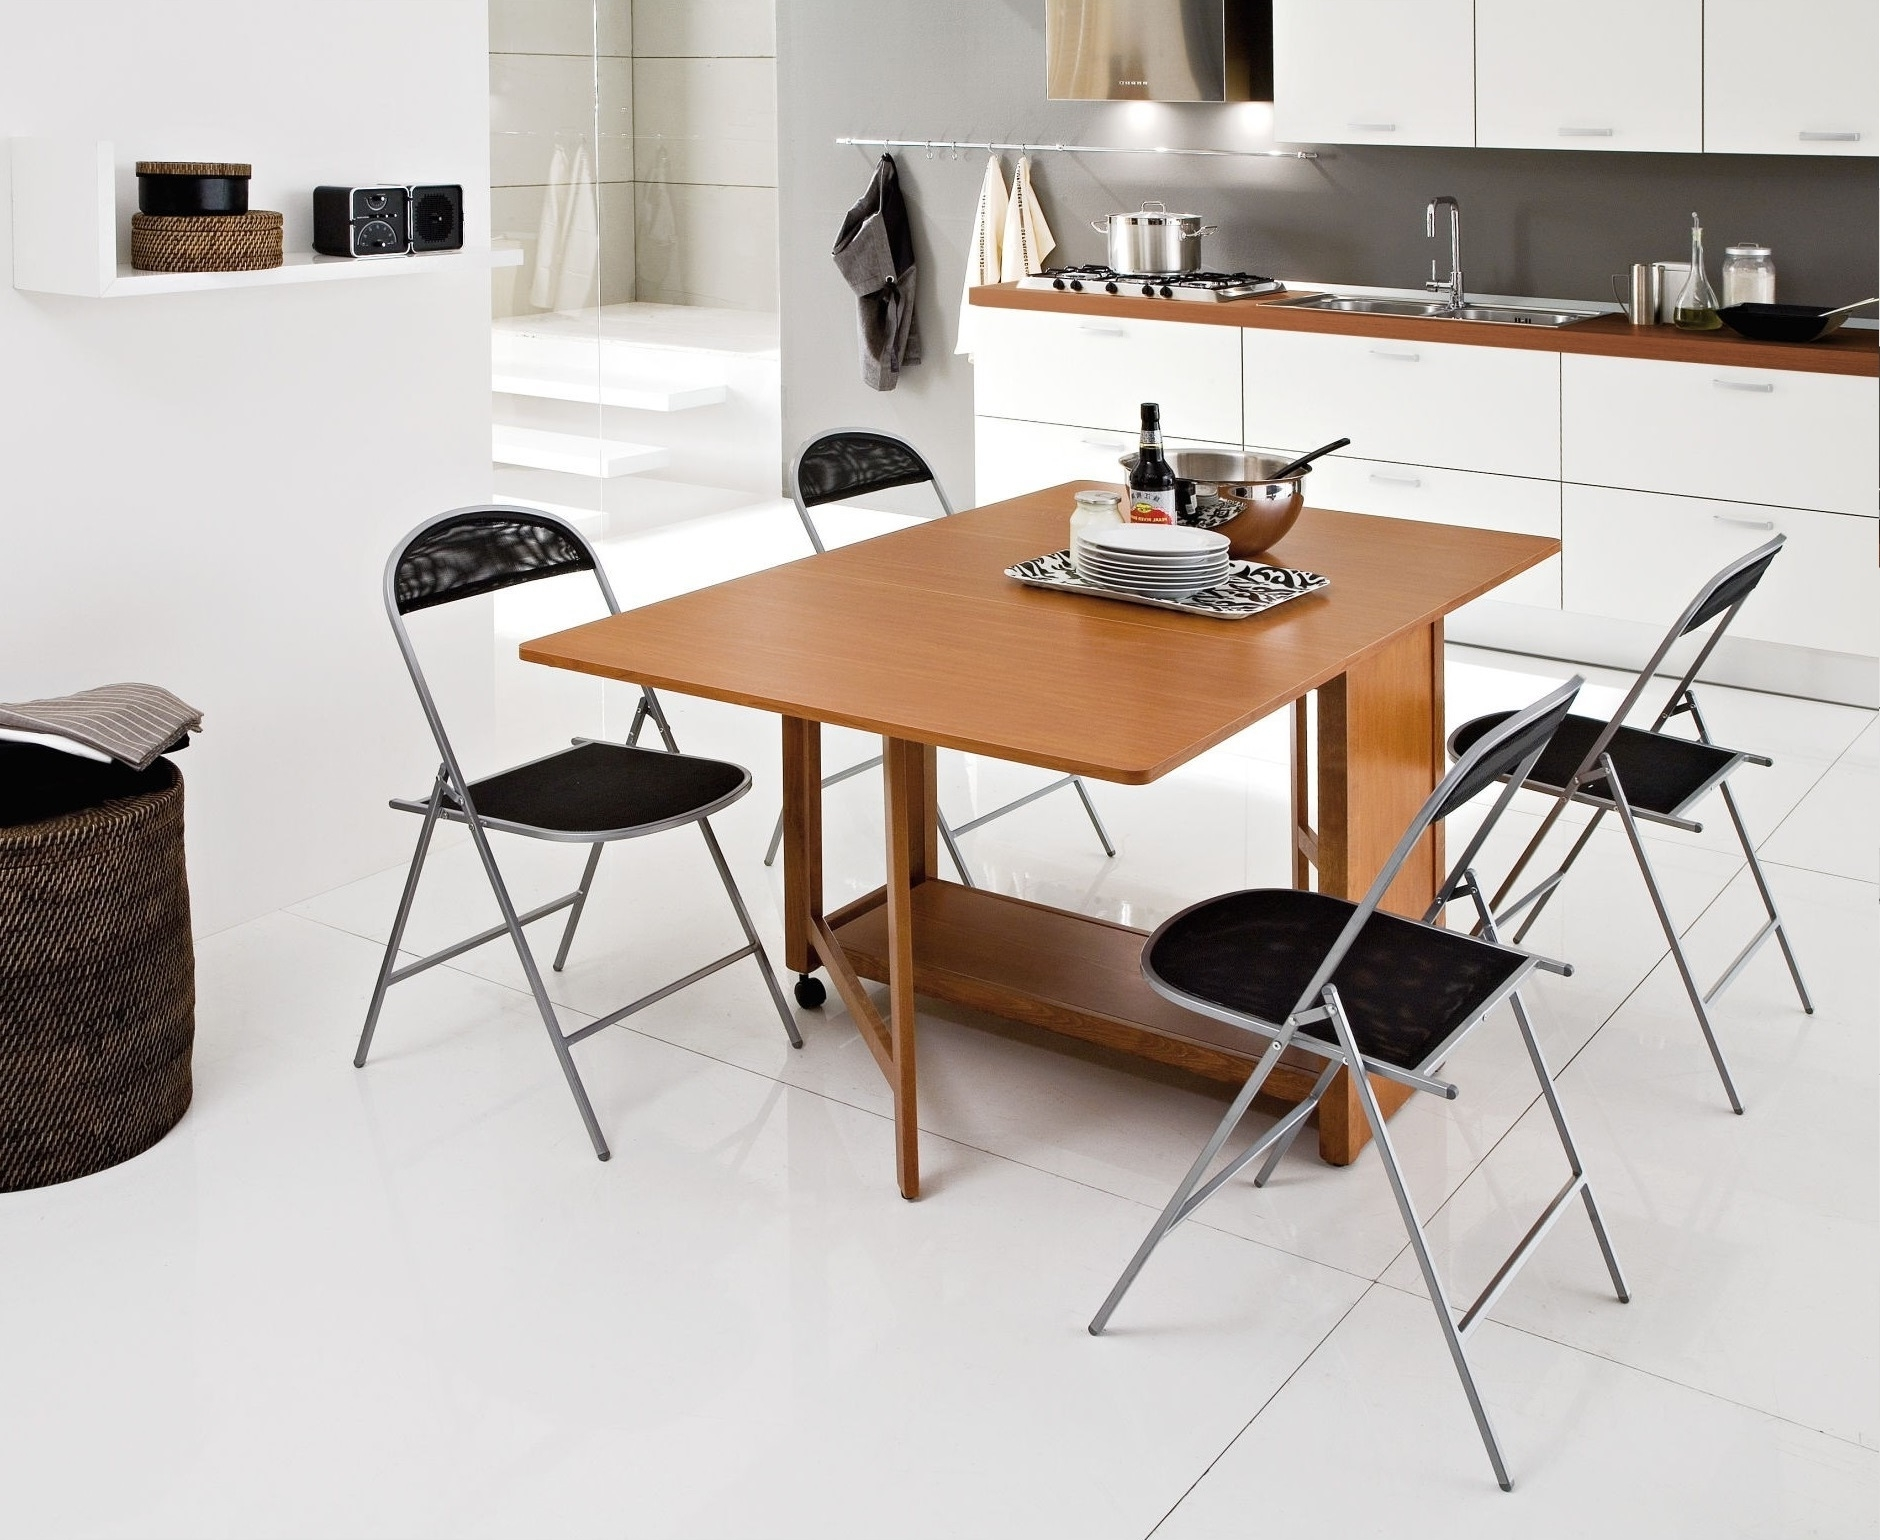 Trendy Dining Sets Fold Up Table For Apartment 330 Furniture Ideas